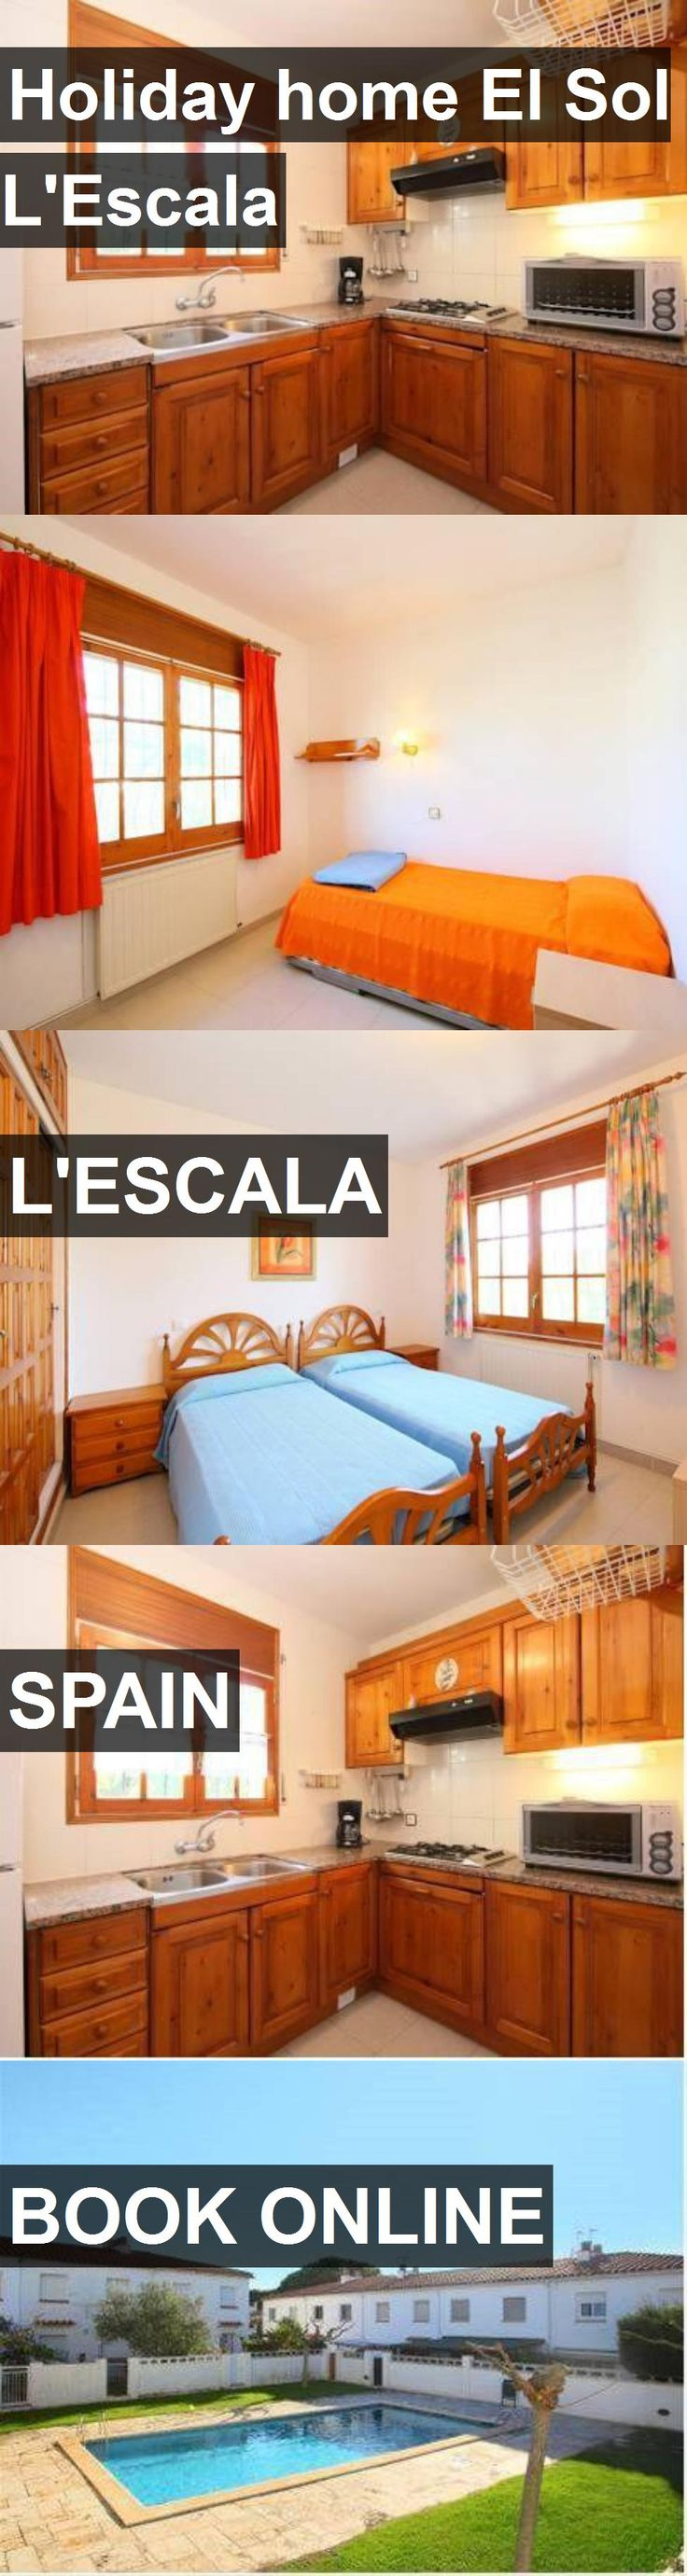 Hotel Holiday home El Sol L'Escala in L'Escala, Spain. For more information, photos, reviews and best prices please follow the link. #Spain #L'Escala #travel #vacation #hotel